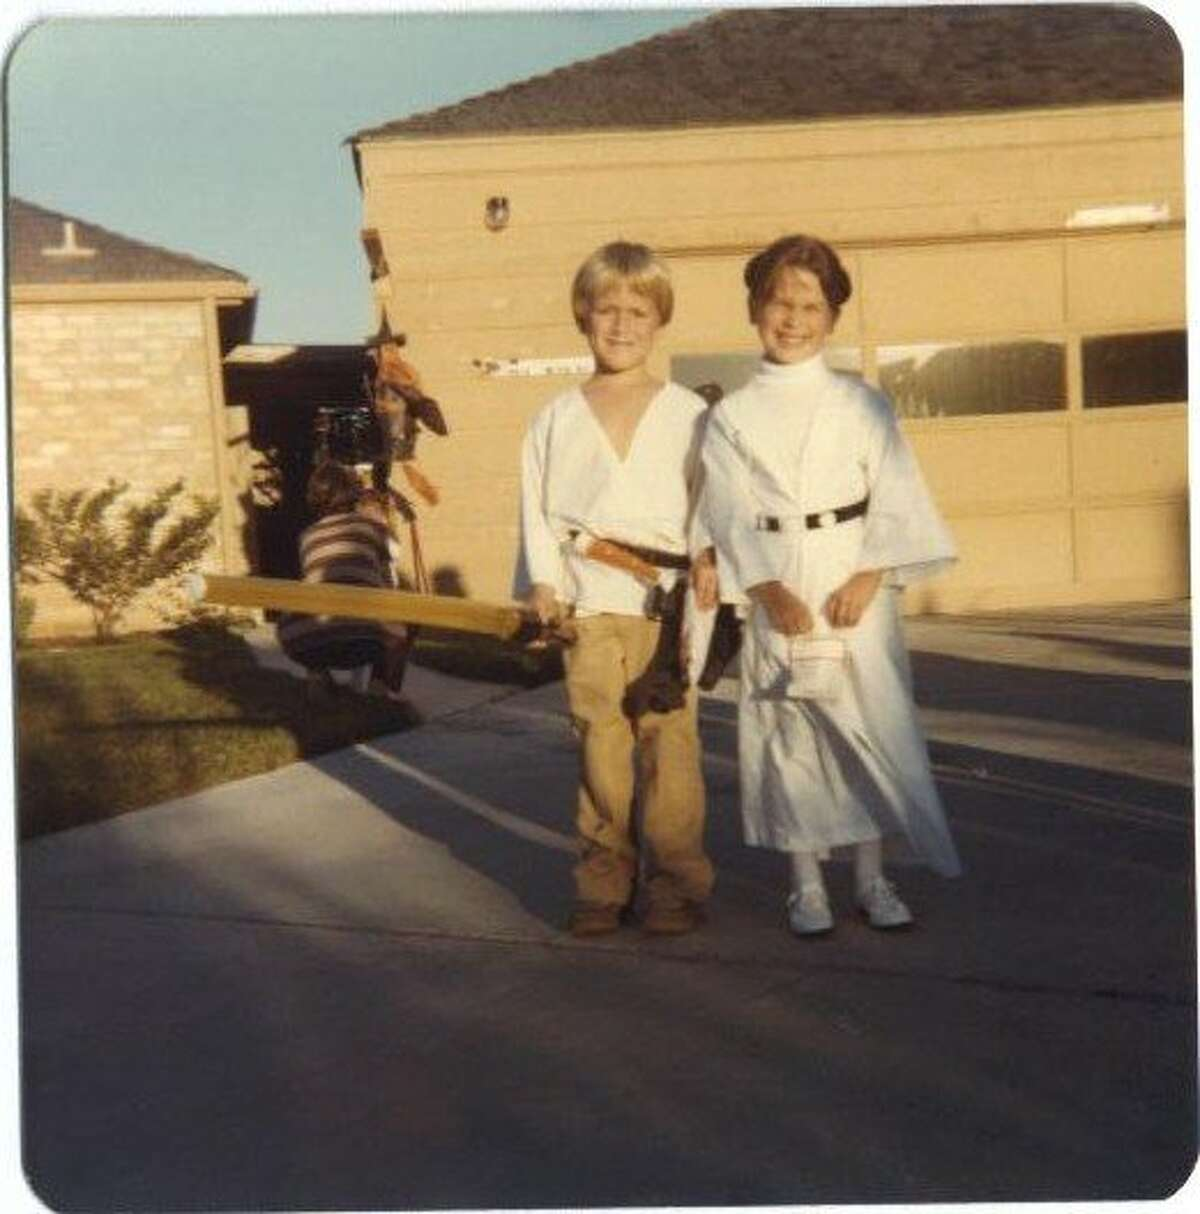 Brian Tees and Jennifer (Cardner) Nichols in 'Star Wars' costumes in the 1980s